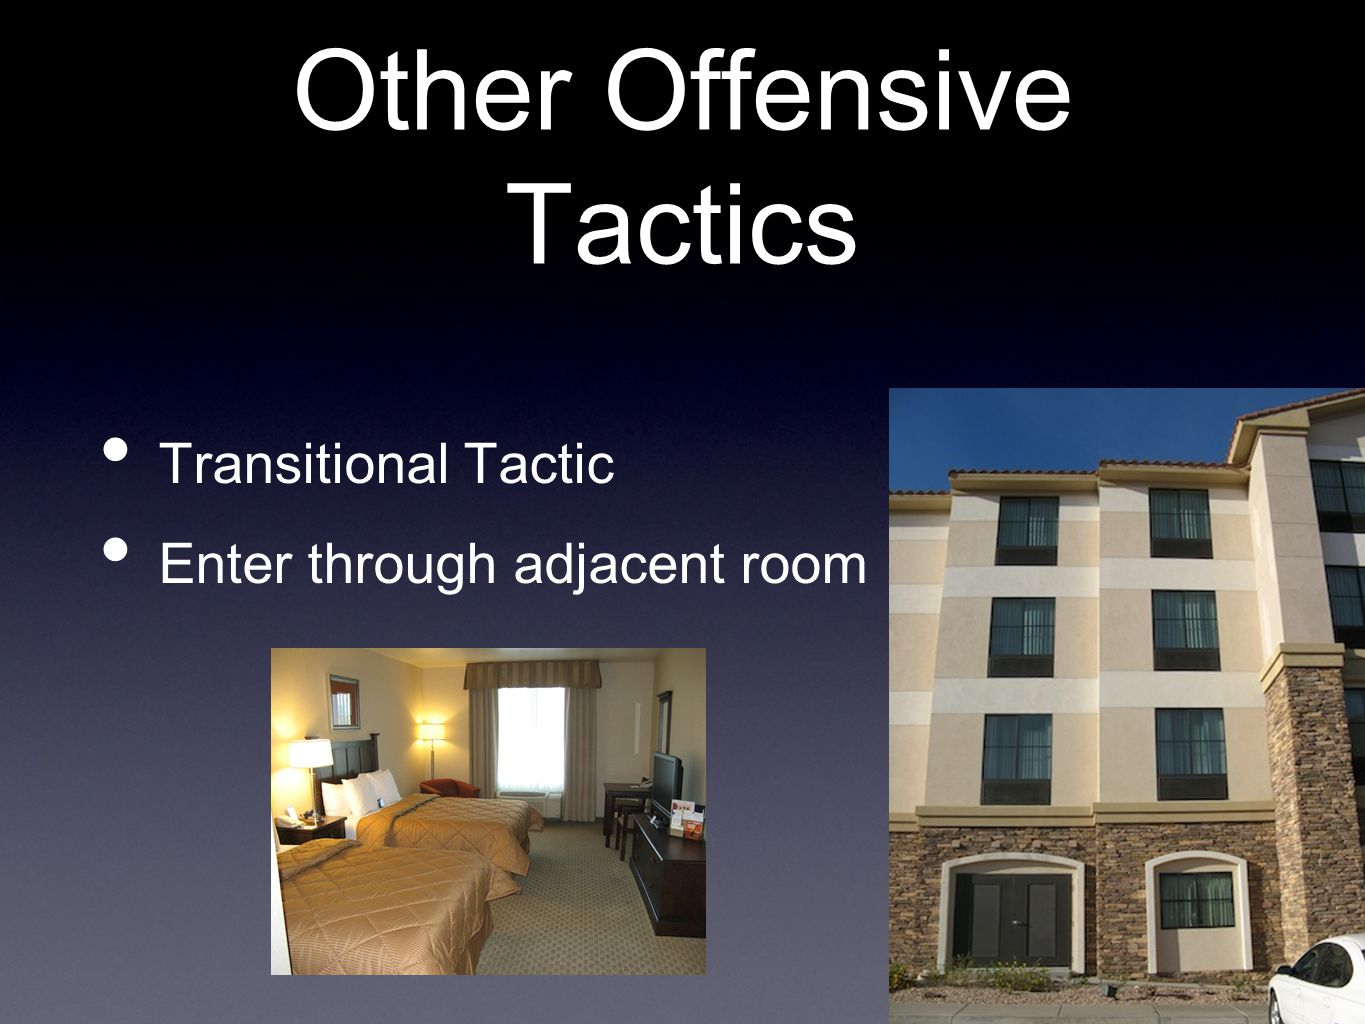 Other Offensive Tactics